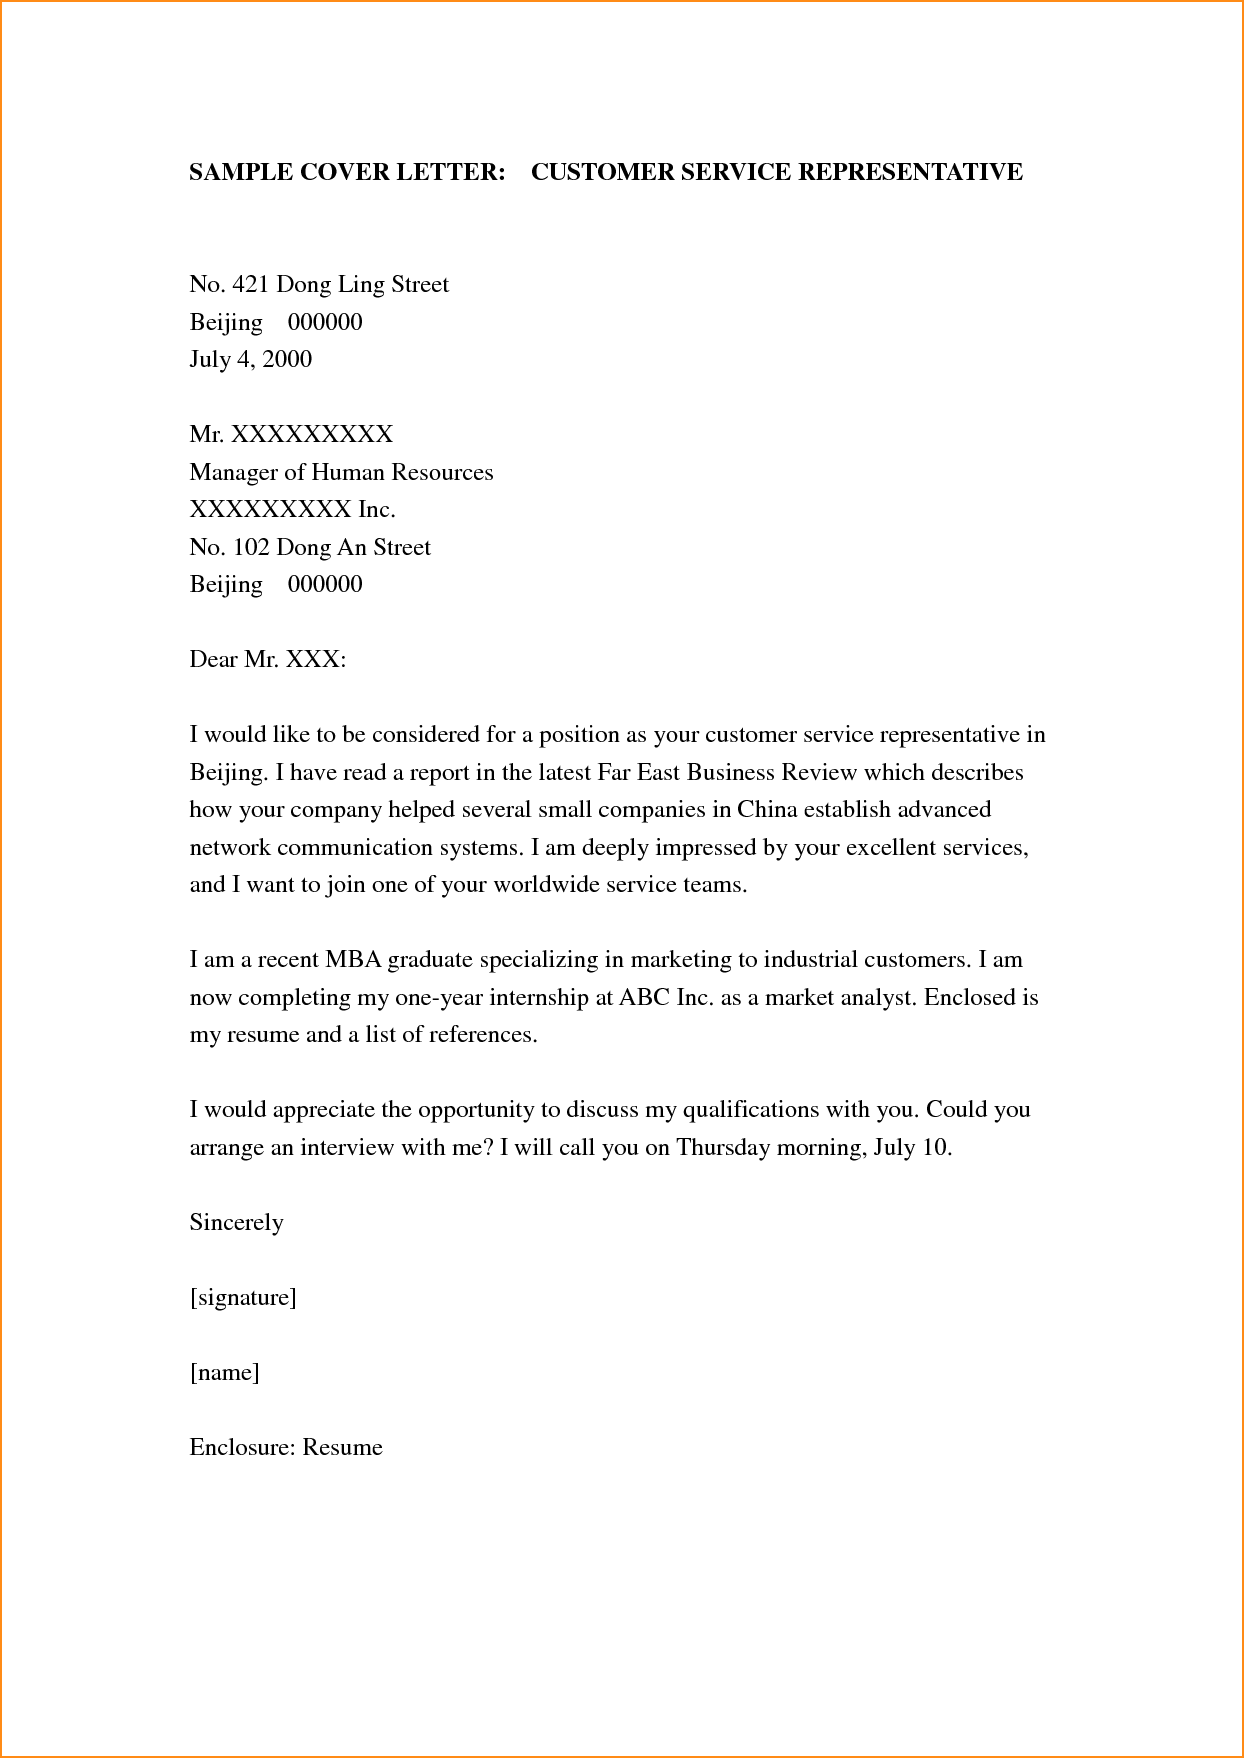 Cover Letter Example Customer Service Basic Job Appication Sample